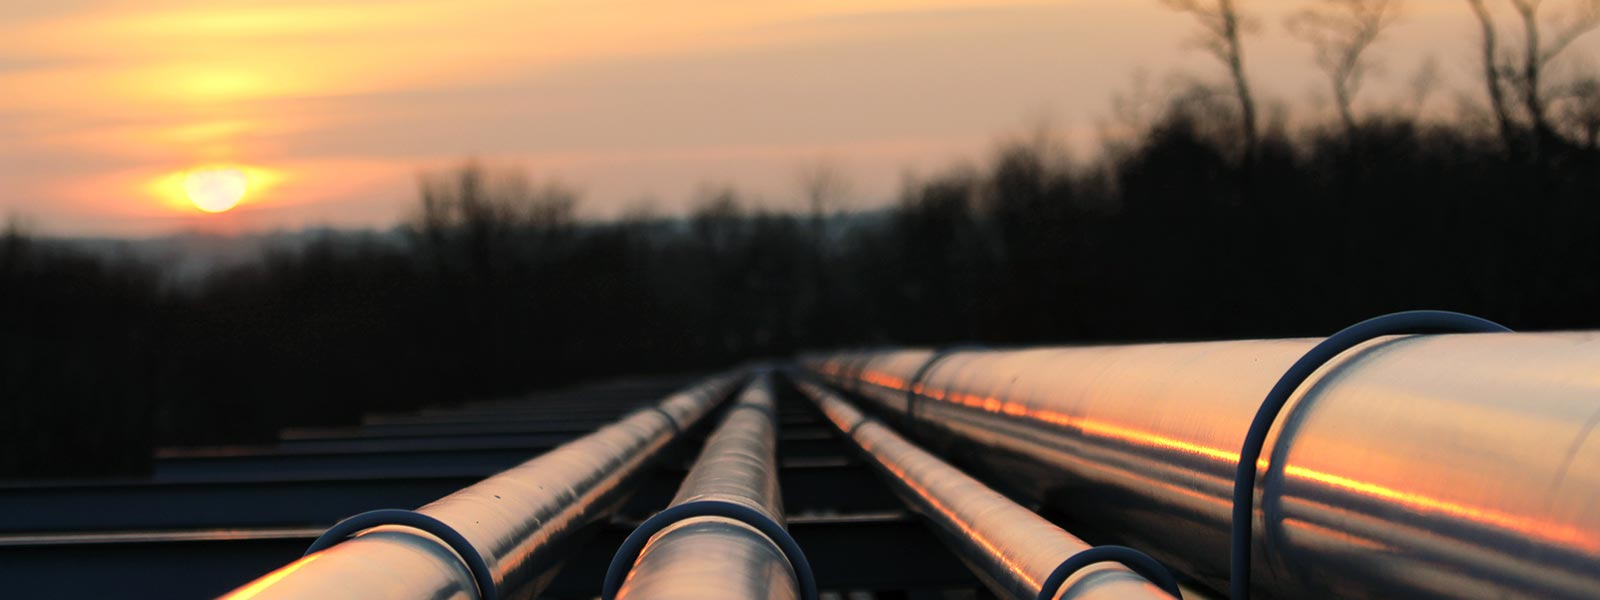 Pipelines & Transportation